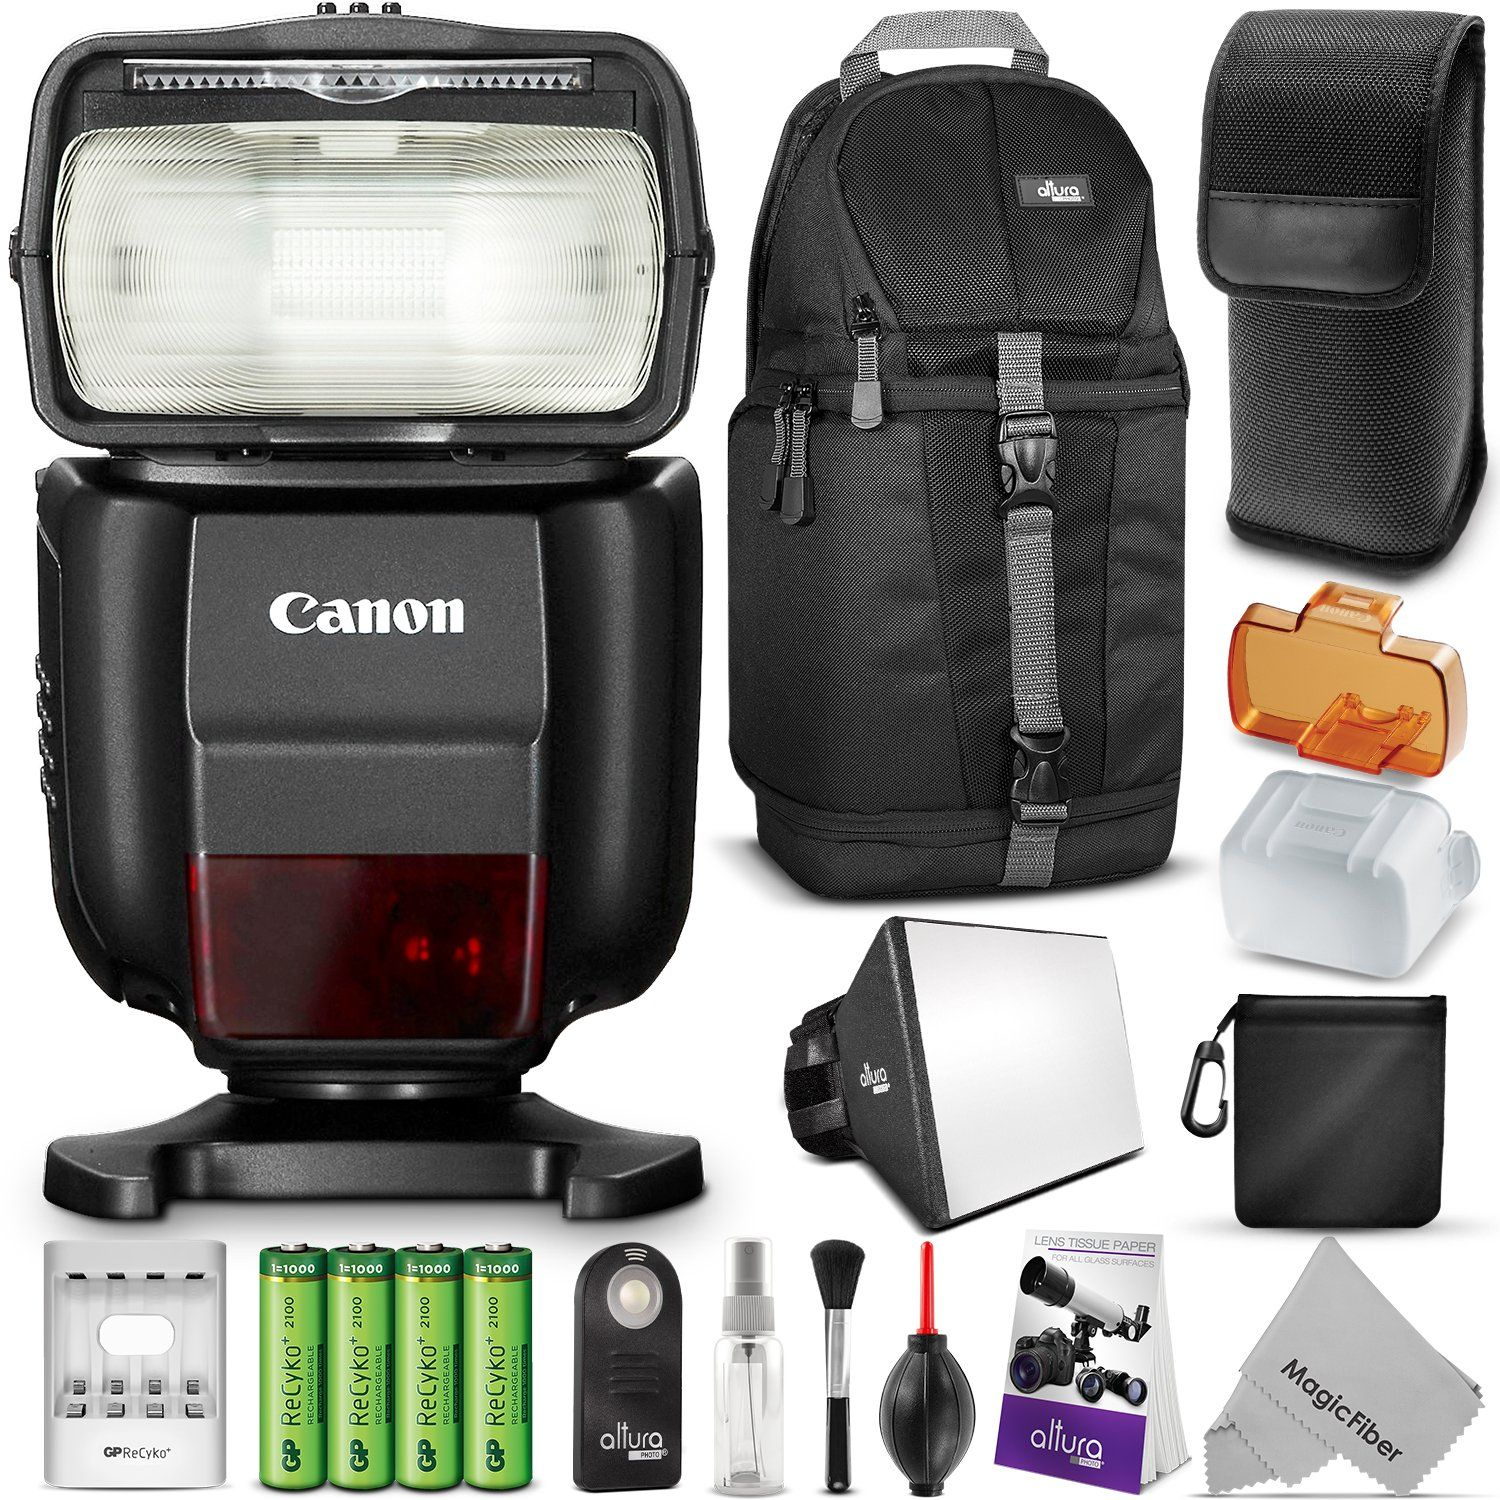 Canon Speedlite 430ex Iii Rt Flash For Canon Dslr Cameras W Essential Bundle Includes Sling Backpack Canon Dslr Camera Camera Accessories Photo Accessories